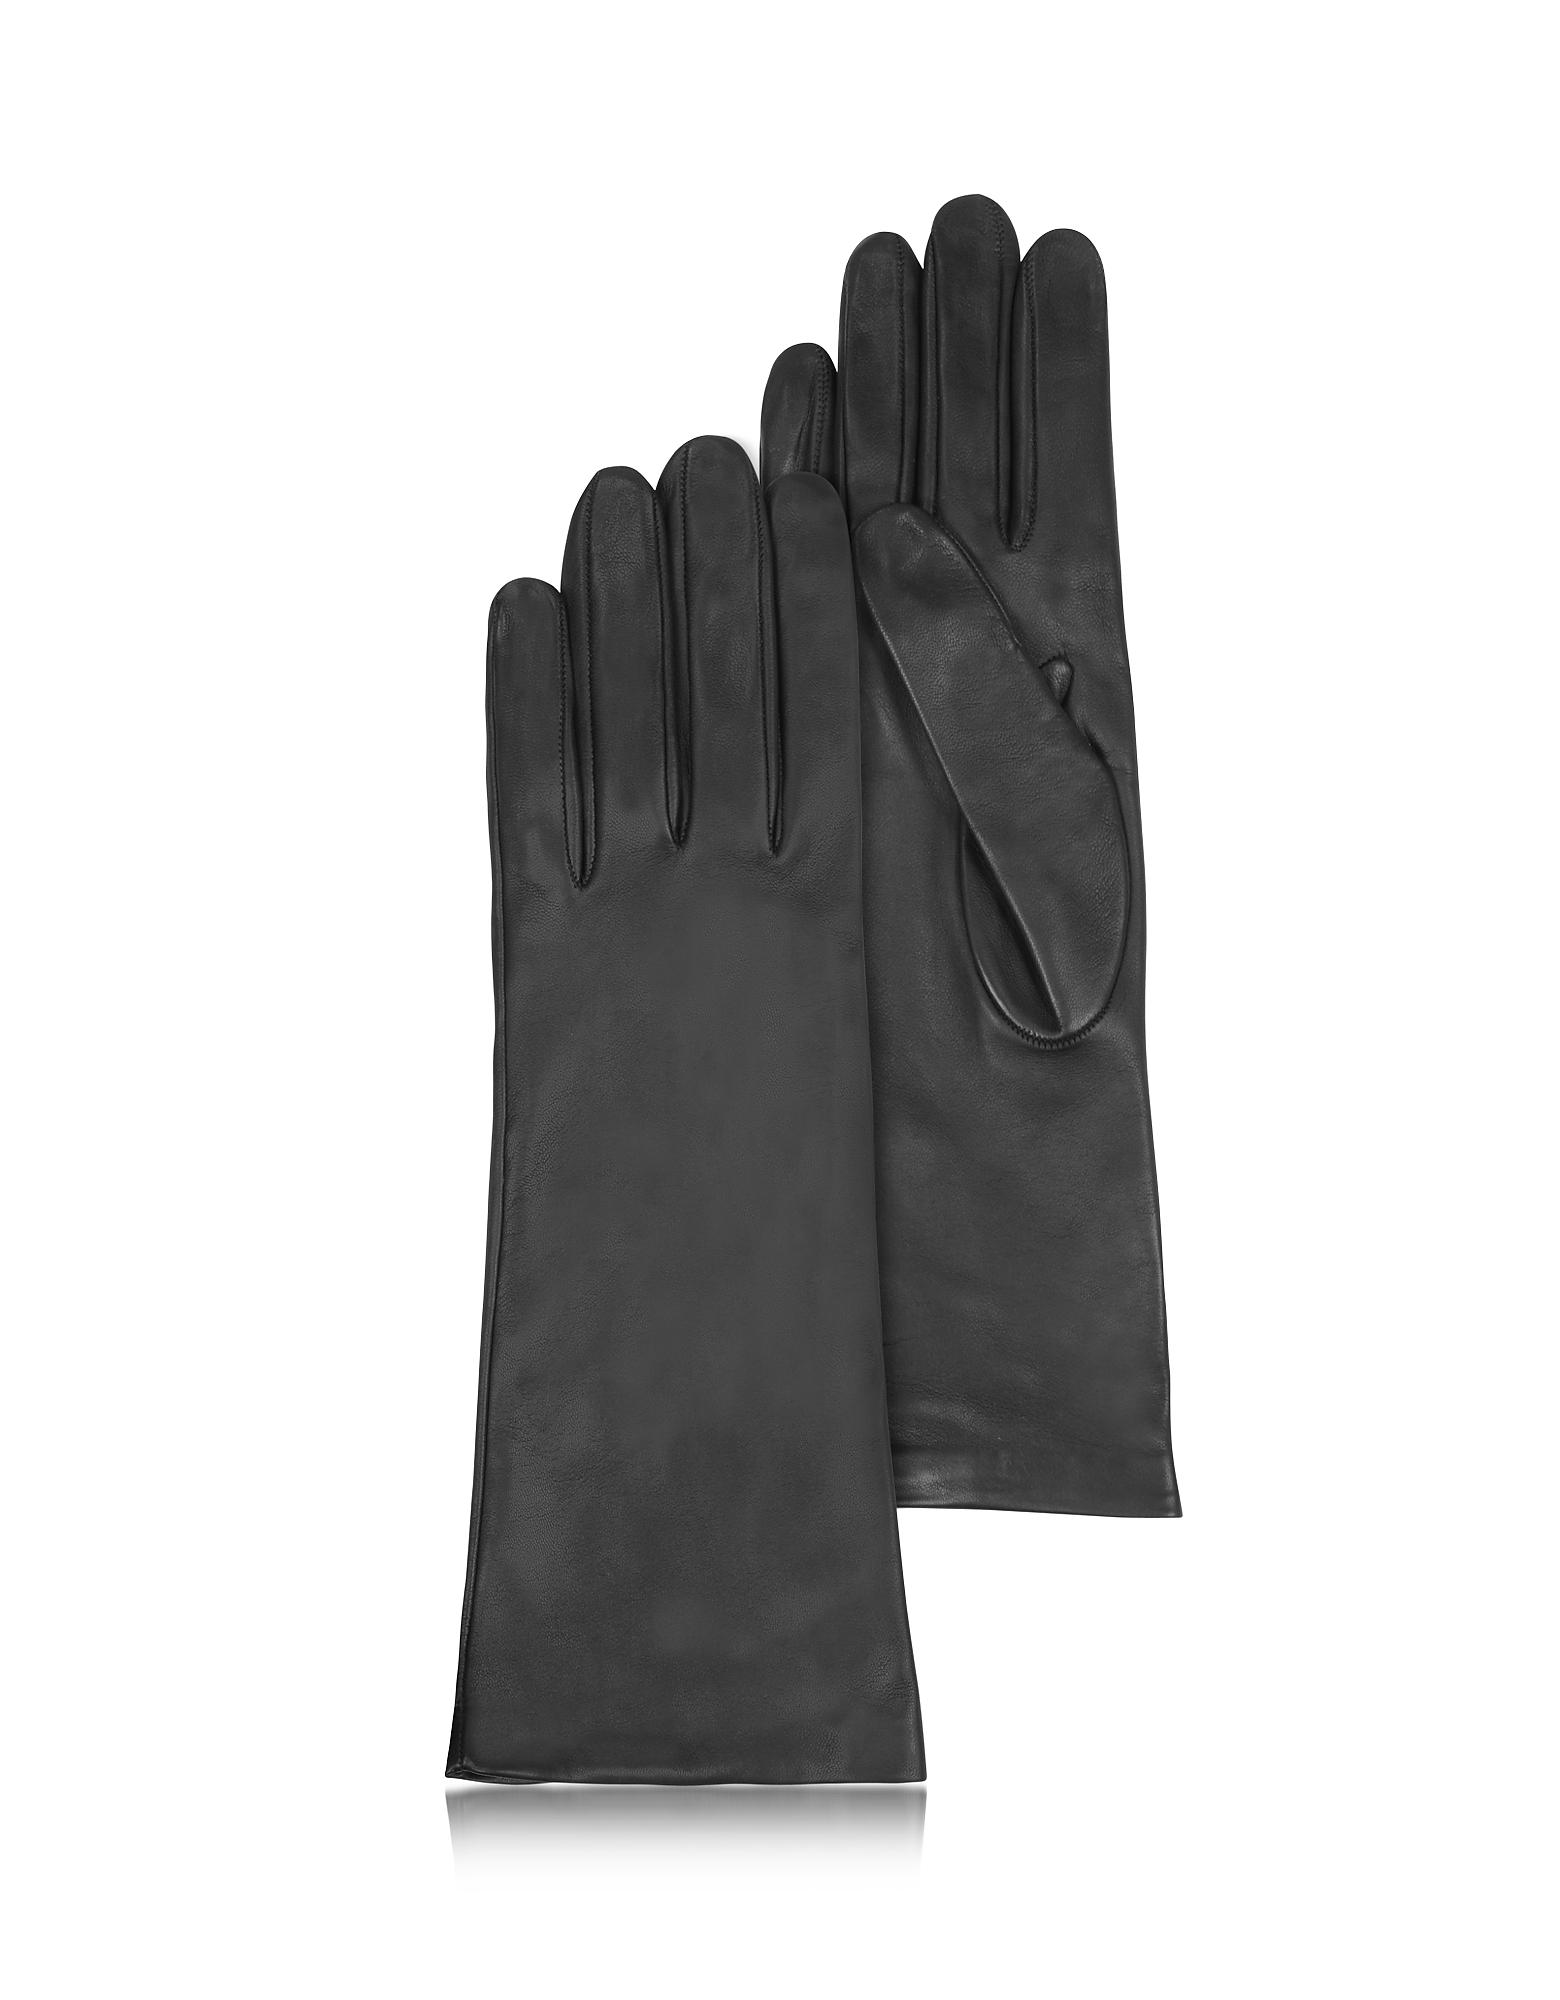 Victorian Gloves | Victorian Accessories Forzieri Designer Womens Gloves Womens Silk Lined Black Italian Leather Long Gloves $106.50 AT vintagedancer.com